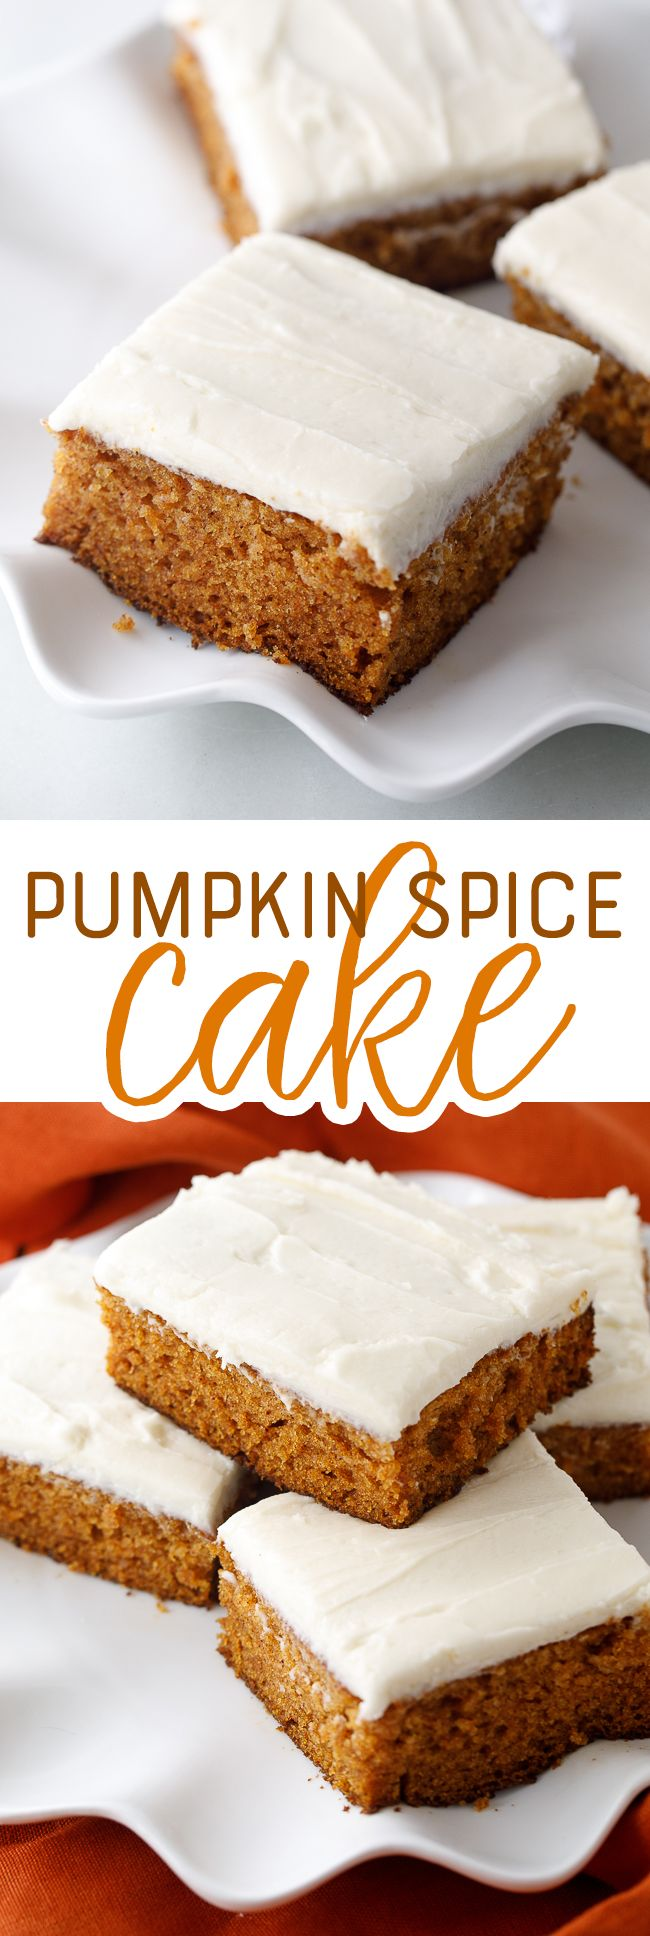 This pumpkin cake is loaded with pumpkin spice flavor, which pairs really nicely with the its sweet cream cheese frosting.